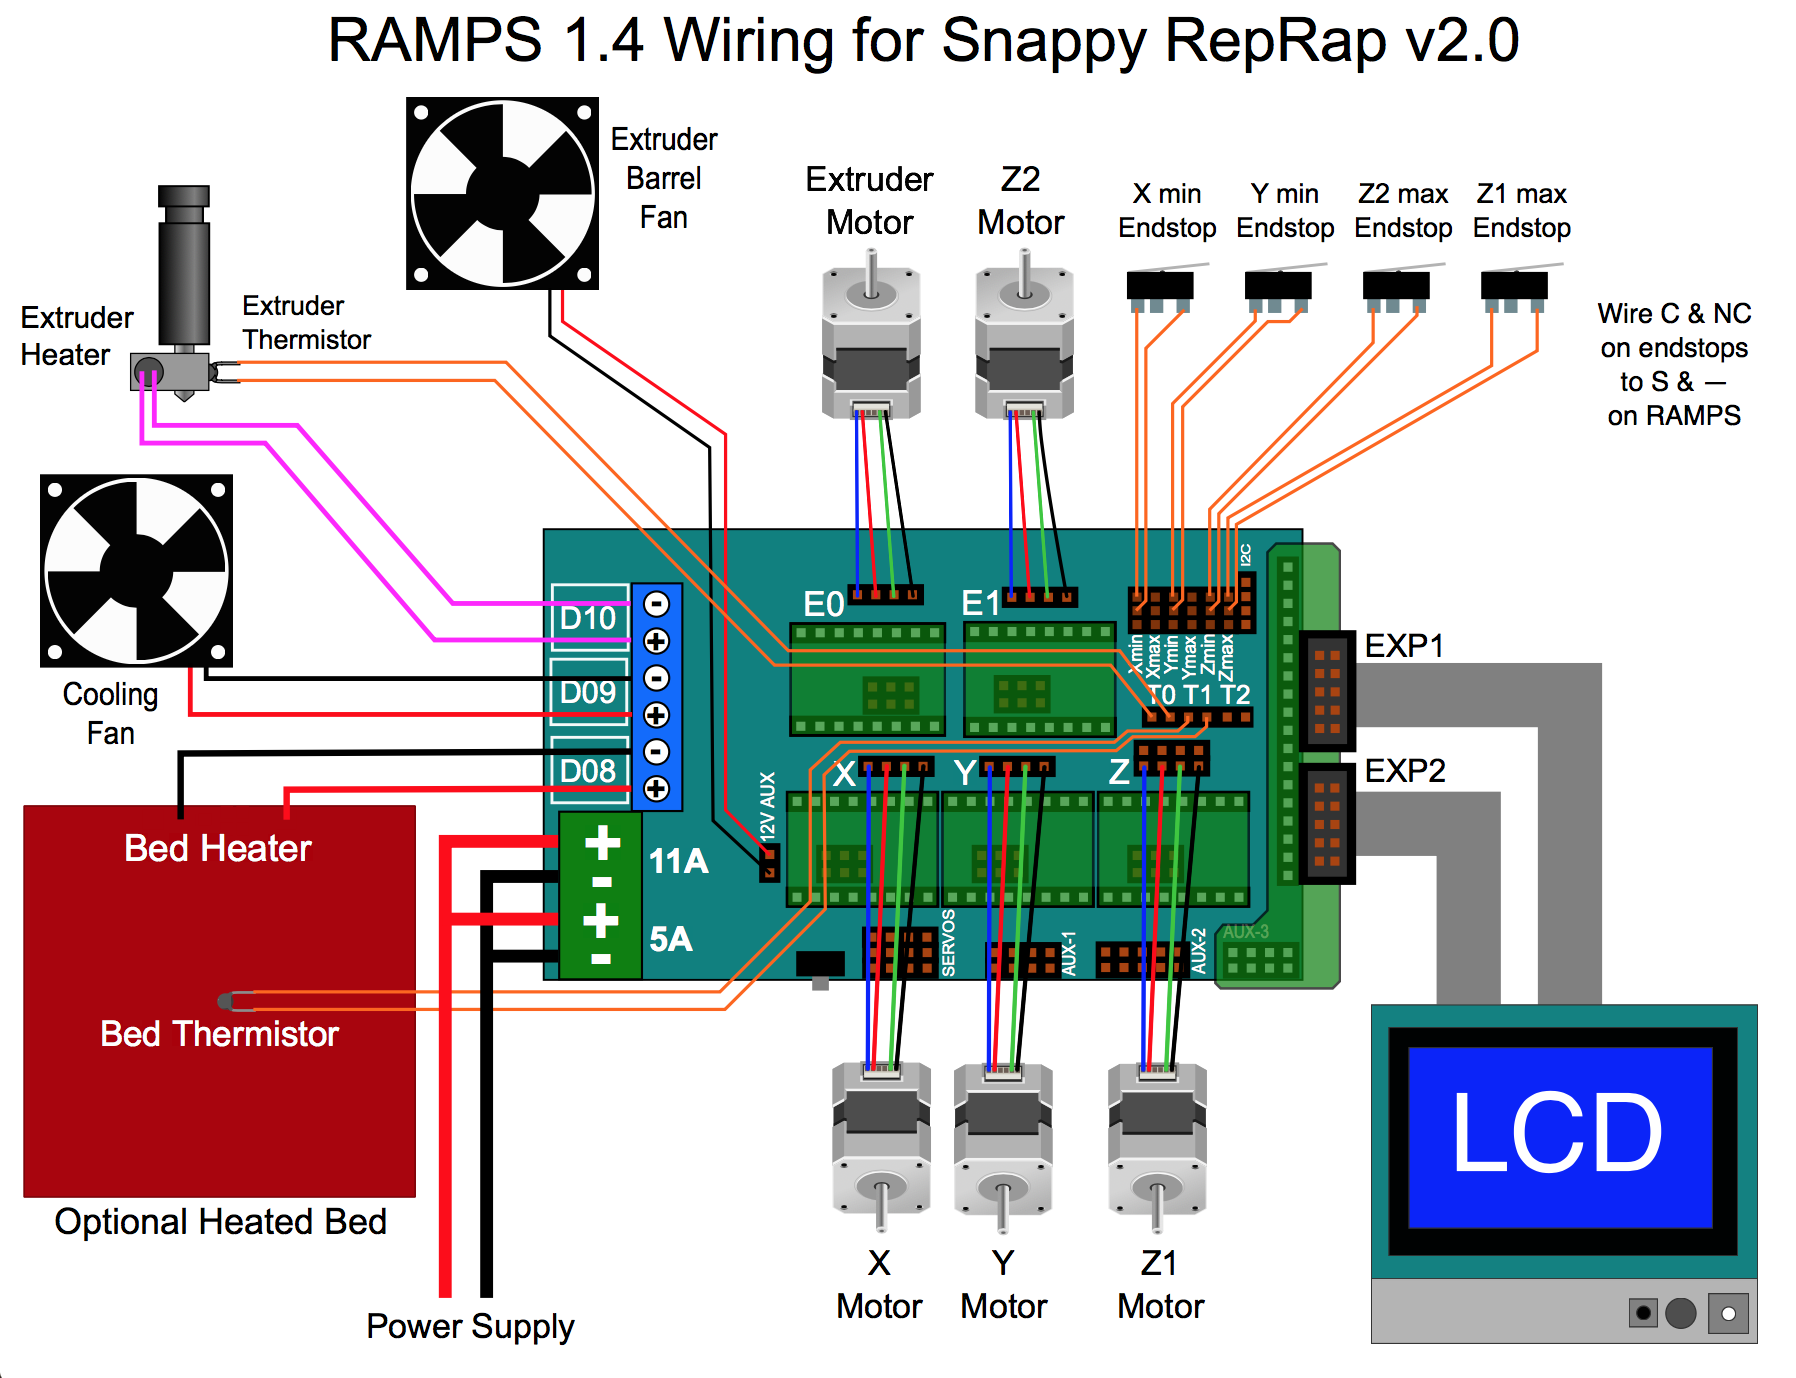 Ramps 1 4 Wiring Diagram Everything About Mega 2 V2 0 Revarbat Snappy Reprap Wiki Github Rh Com Arduino Schematic Trailer Plans